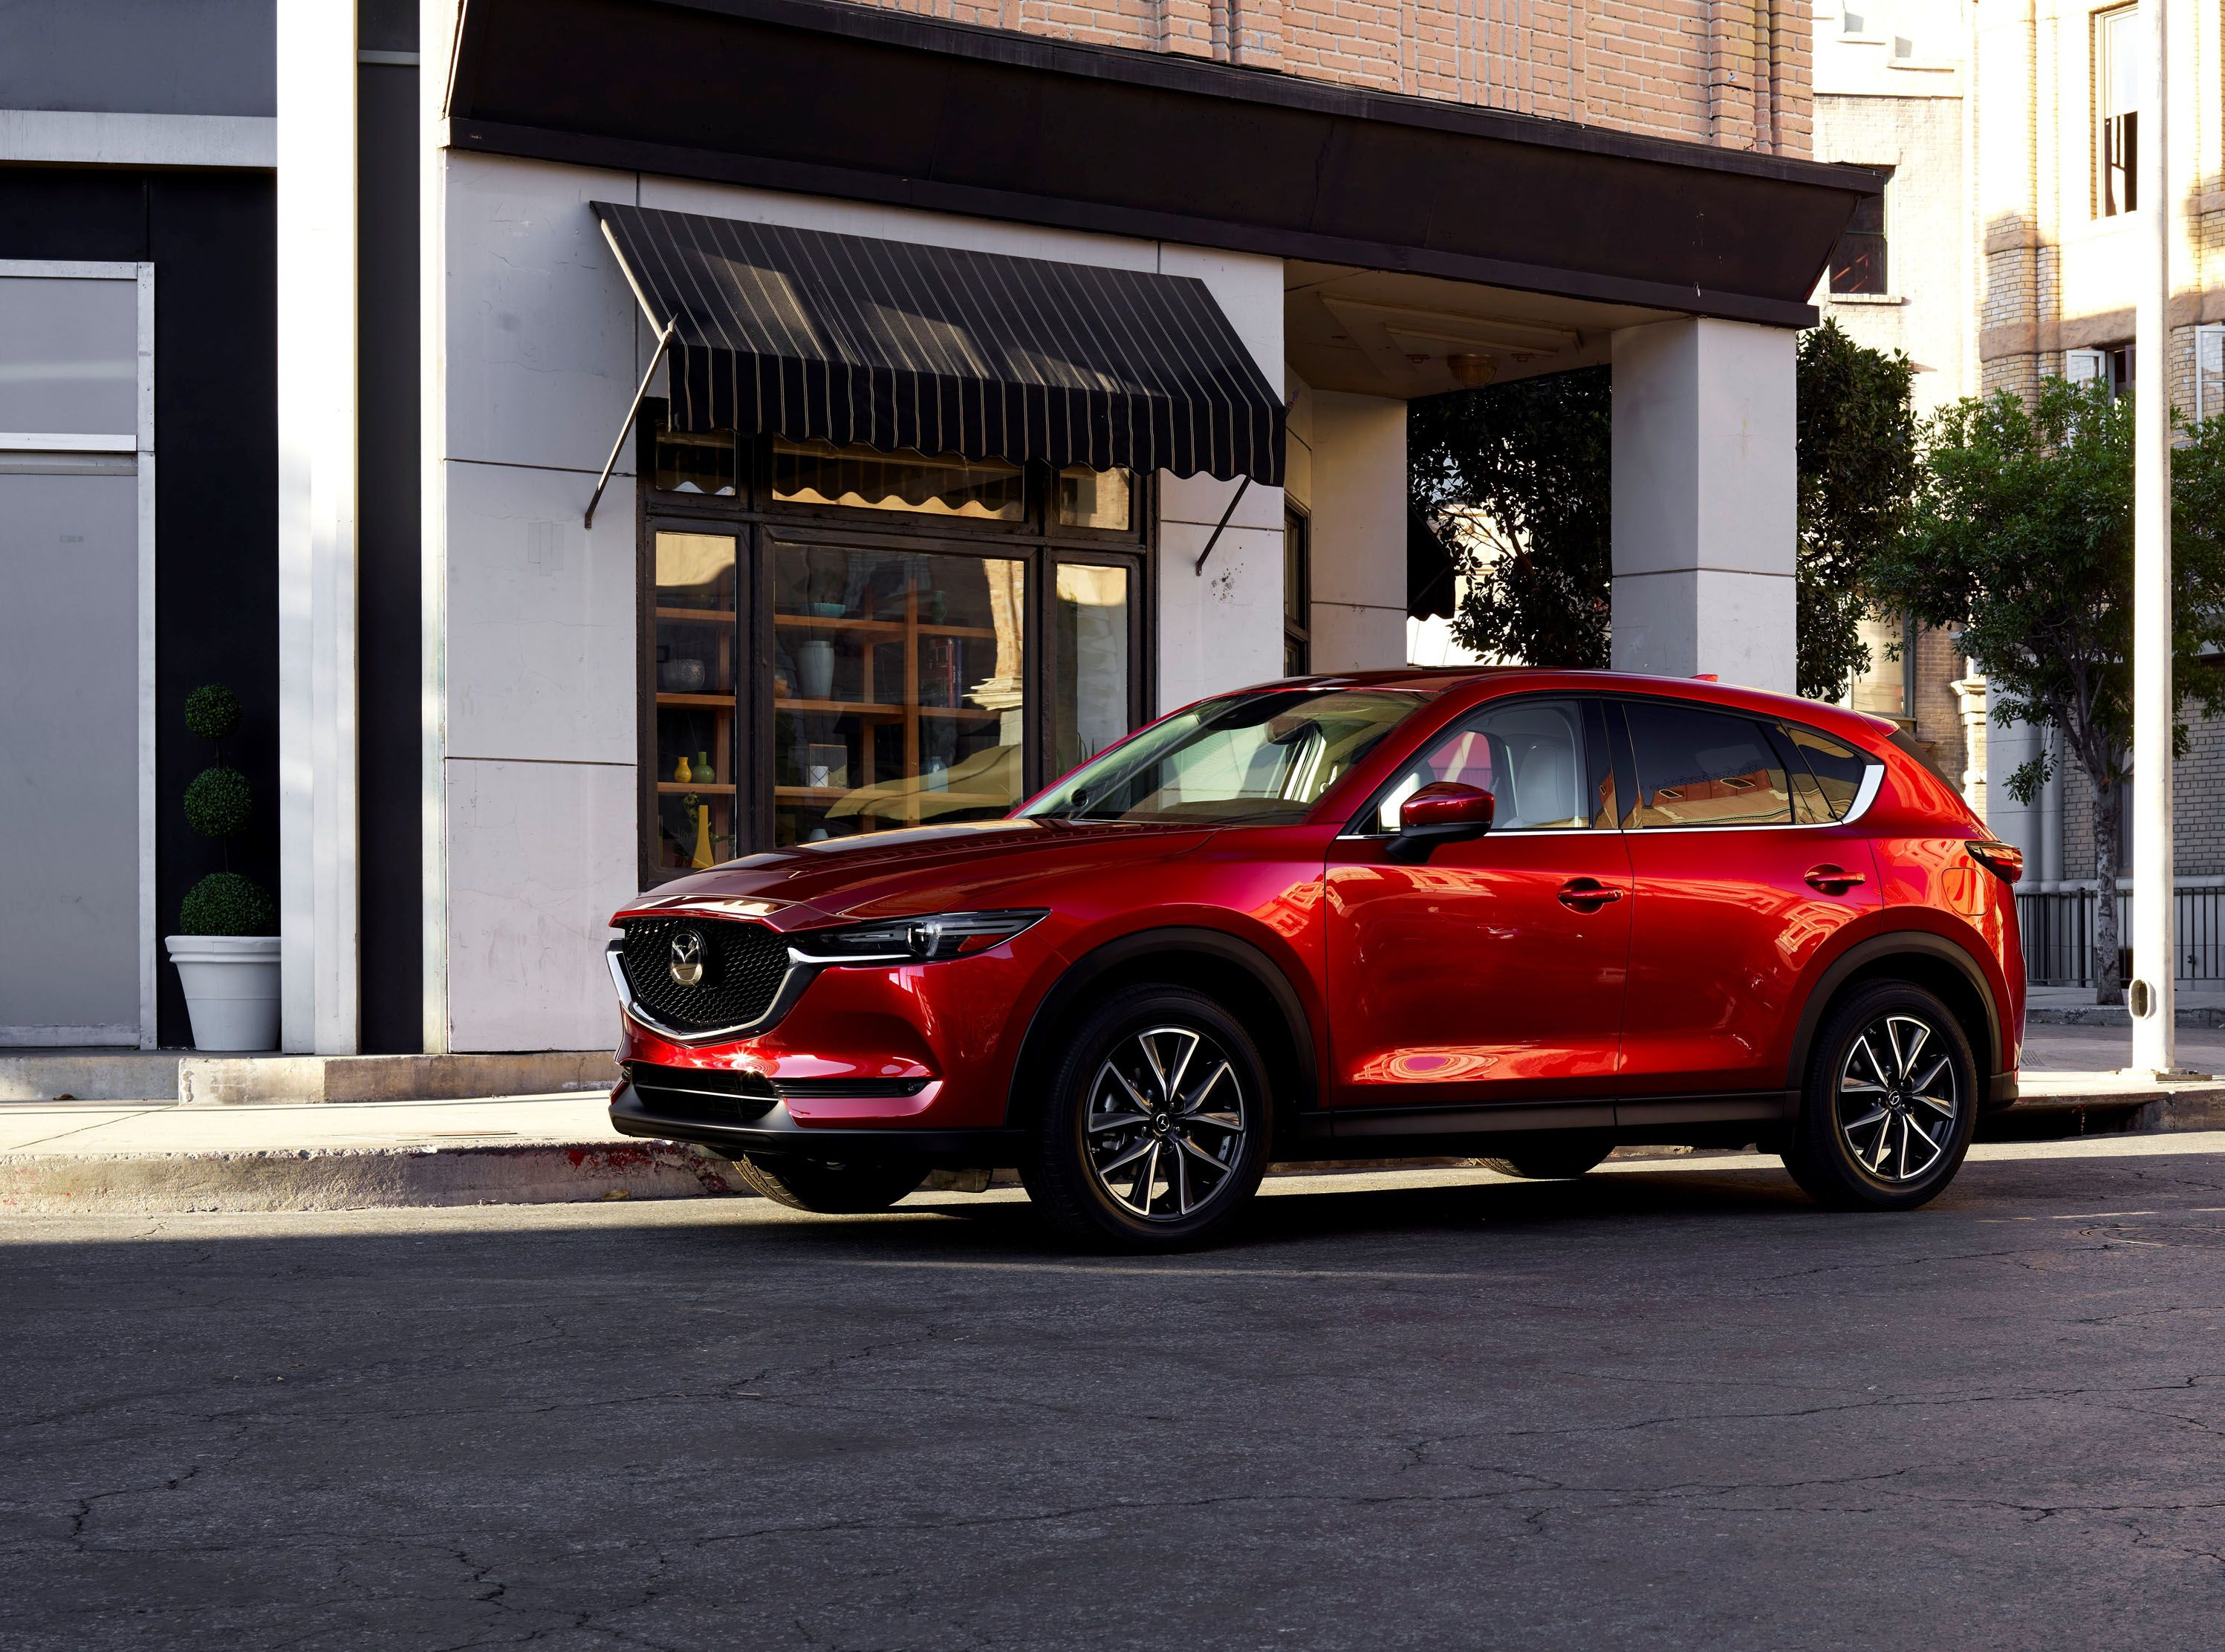 Mazda Cx 5 Diesel Engine Still Mia In Compact Crossover Utility